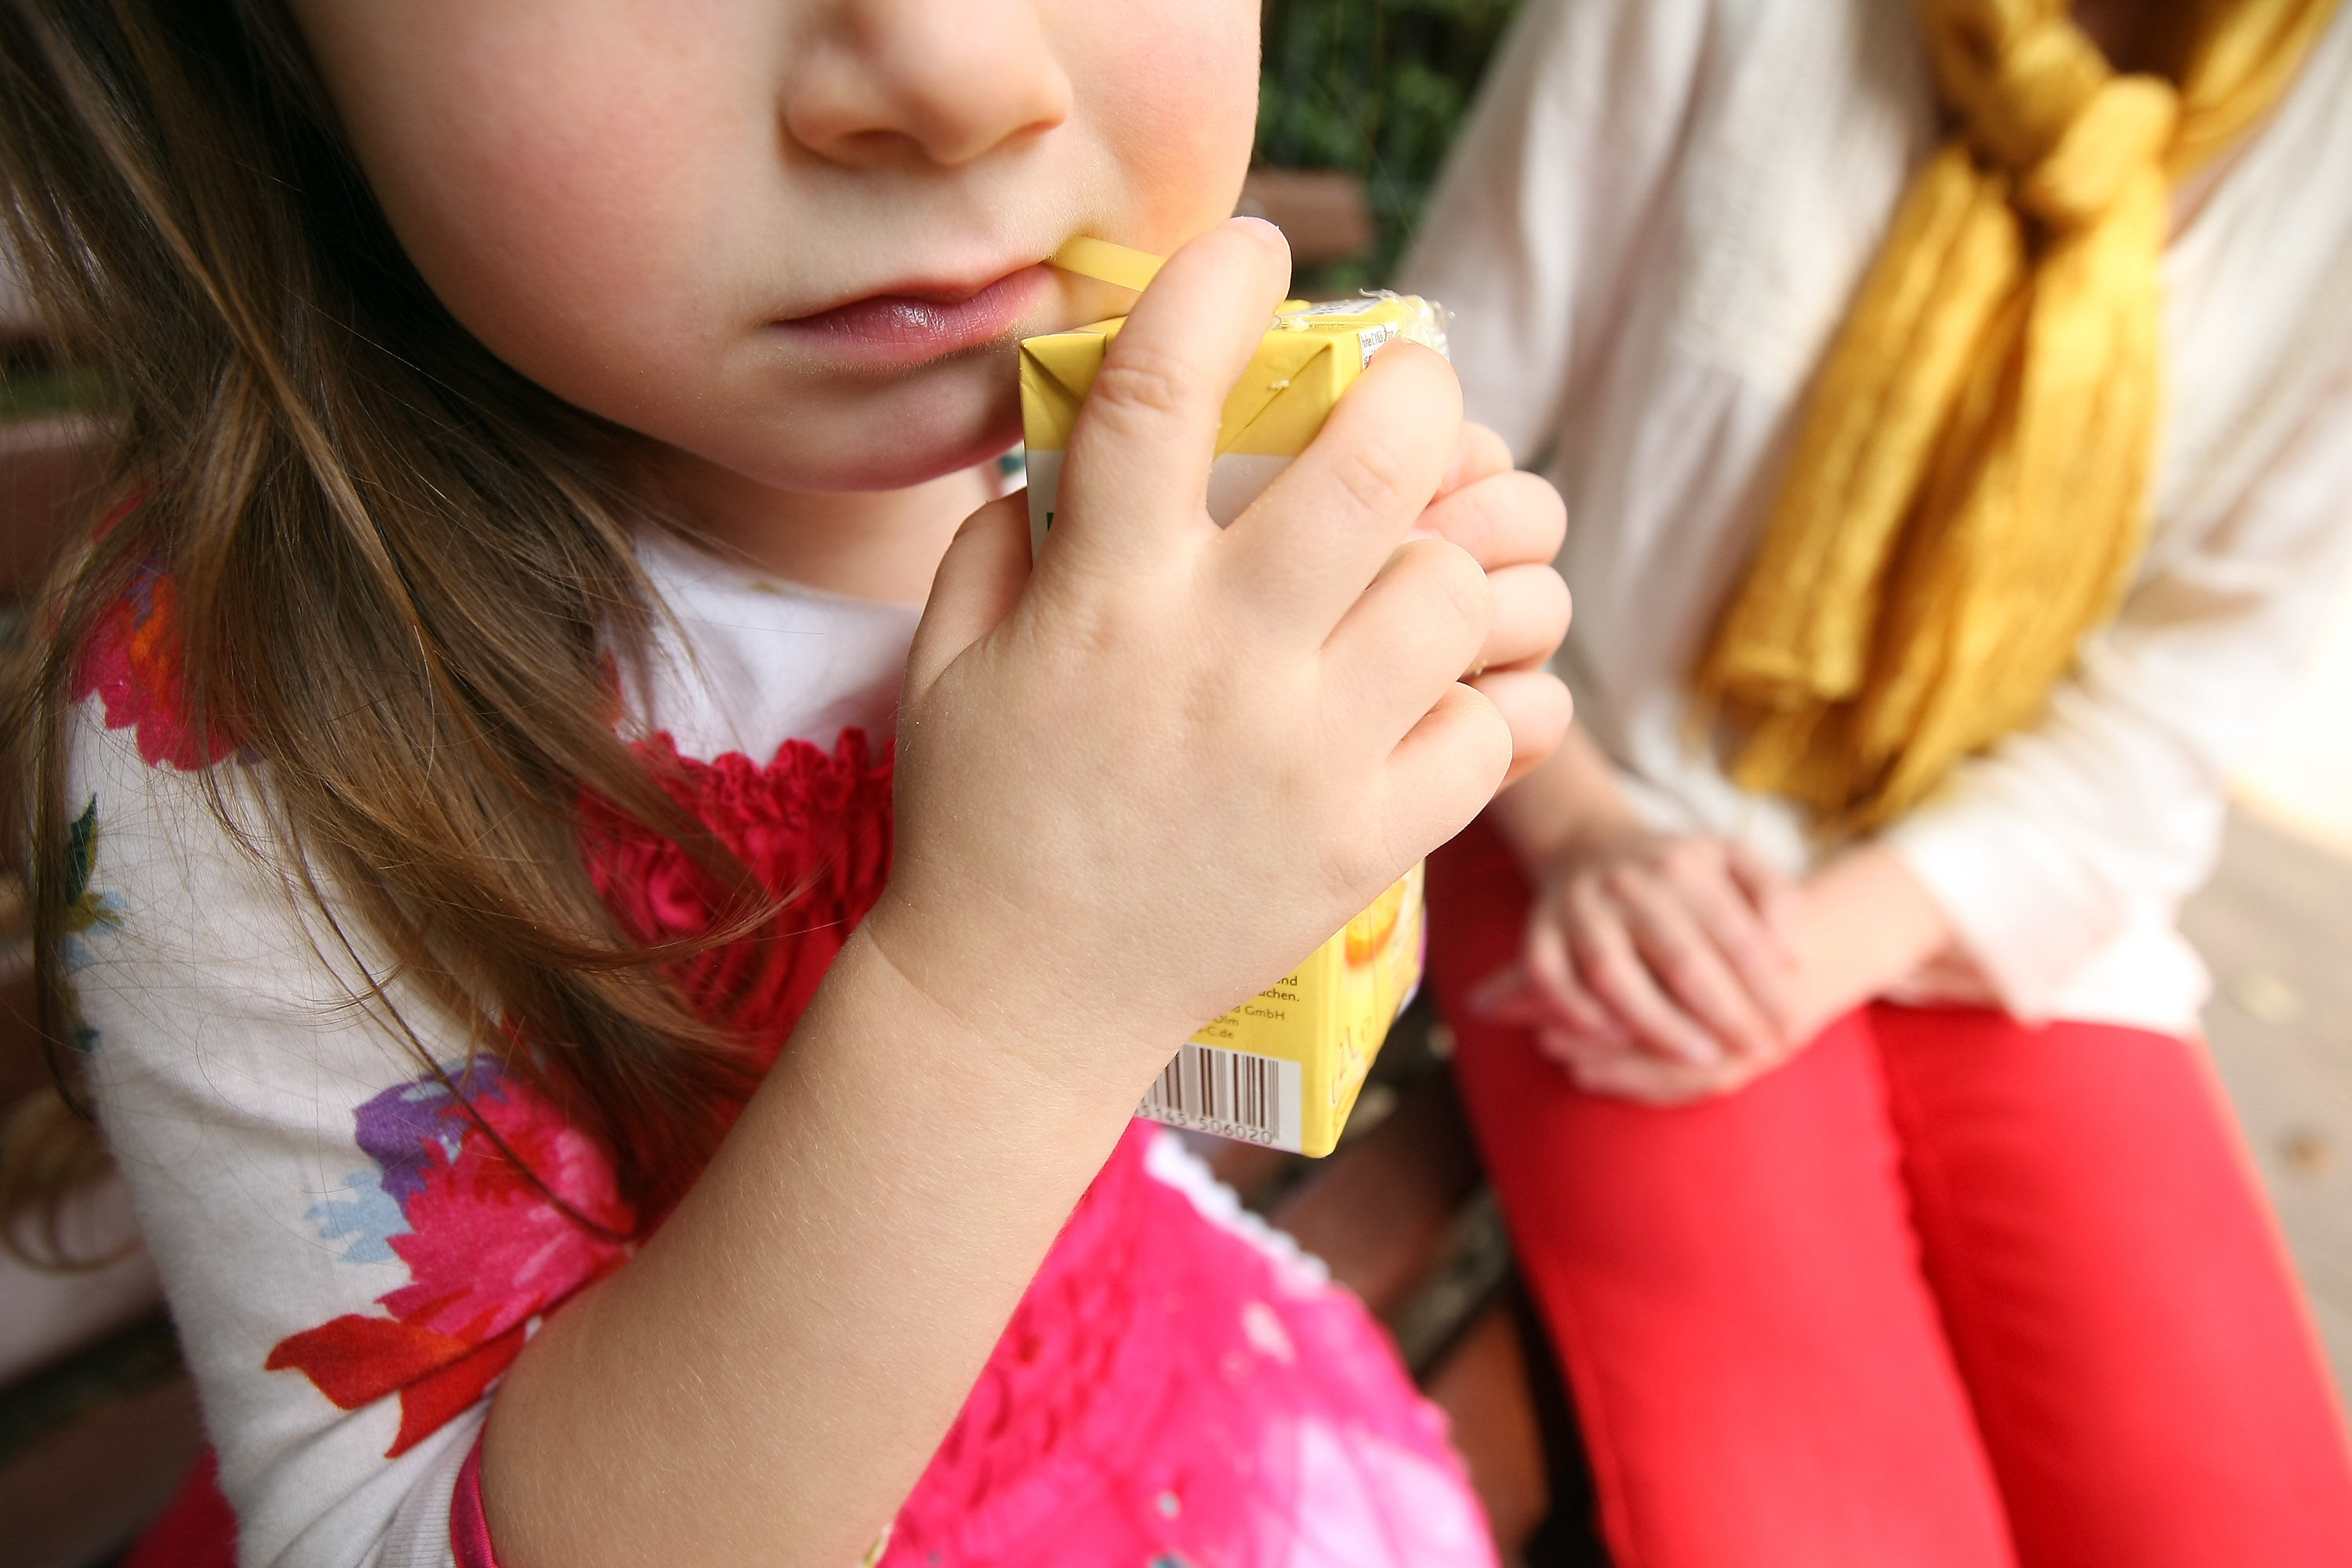 Kids Are Consuming Way More Artificial Sweeteners Than Ever Before